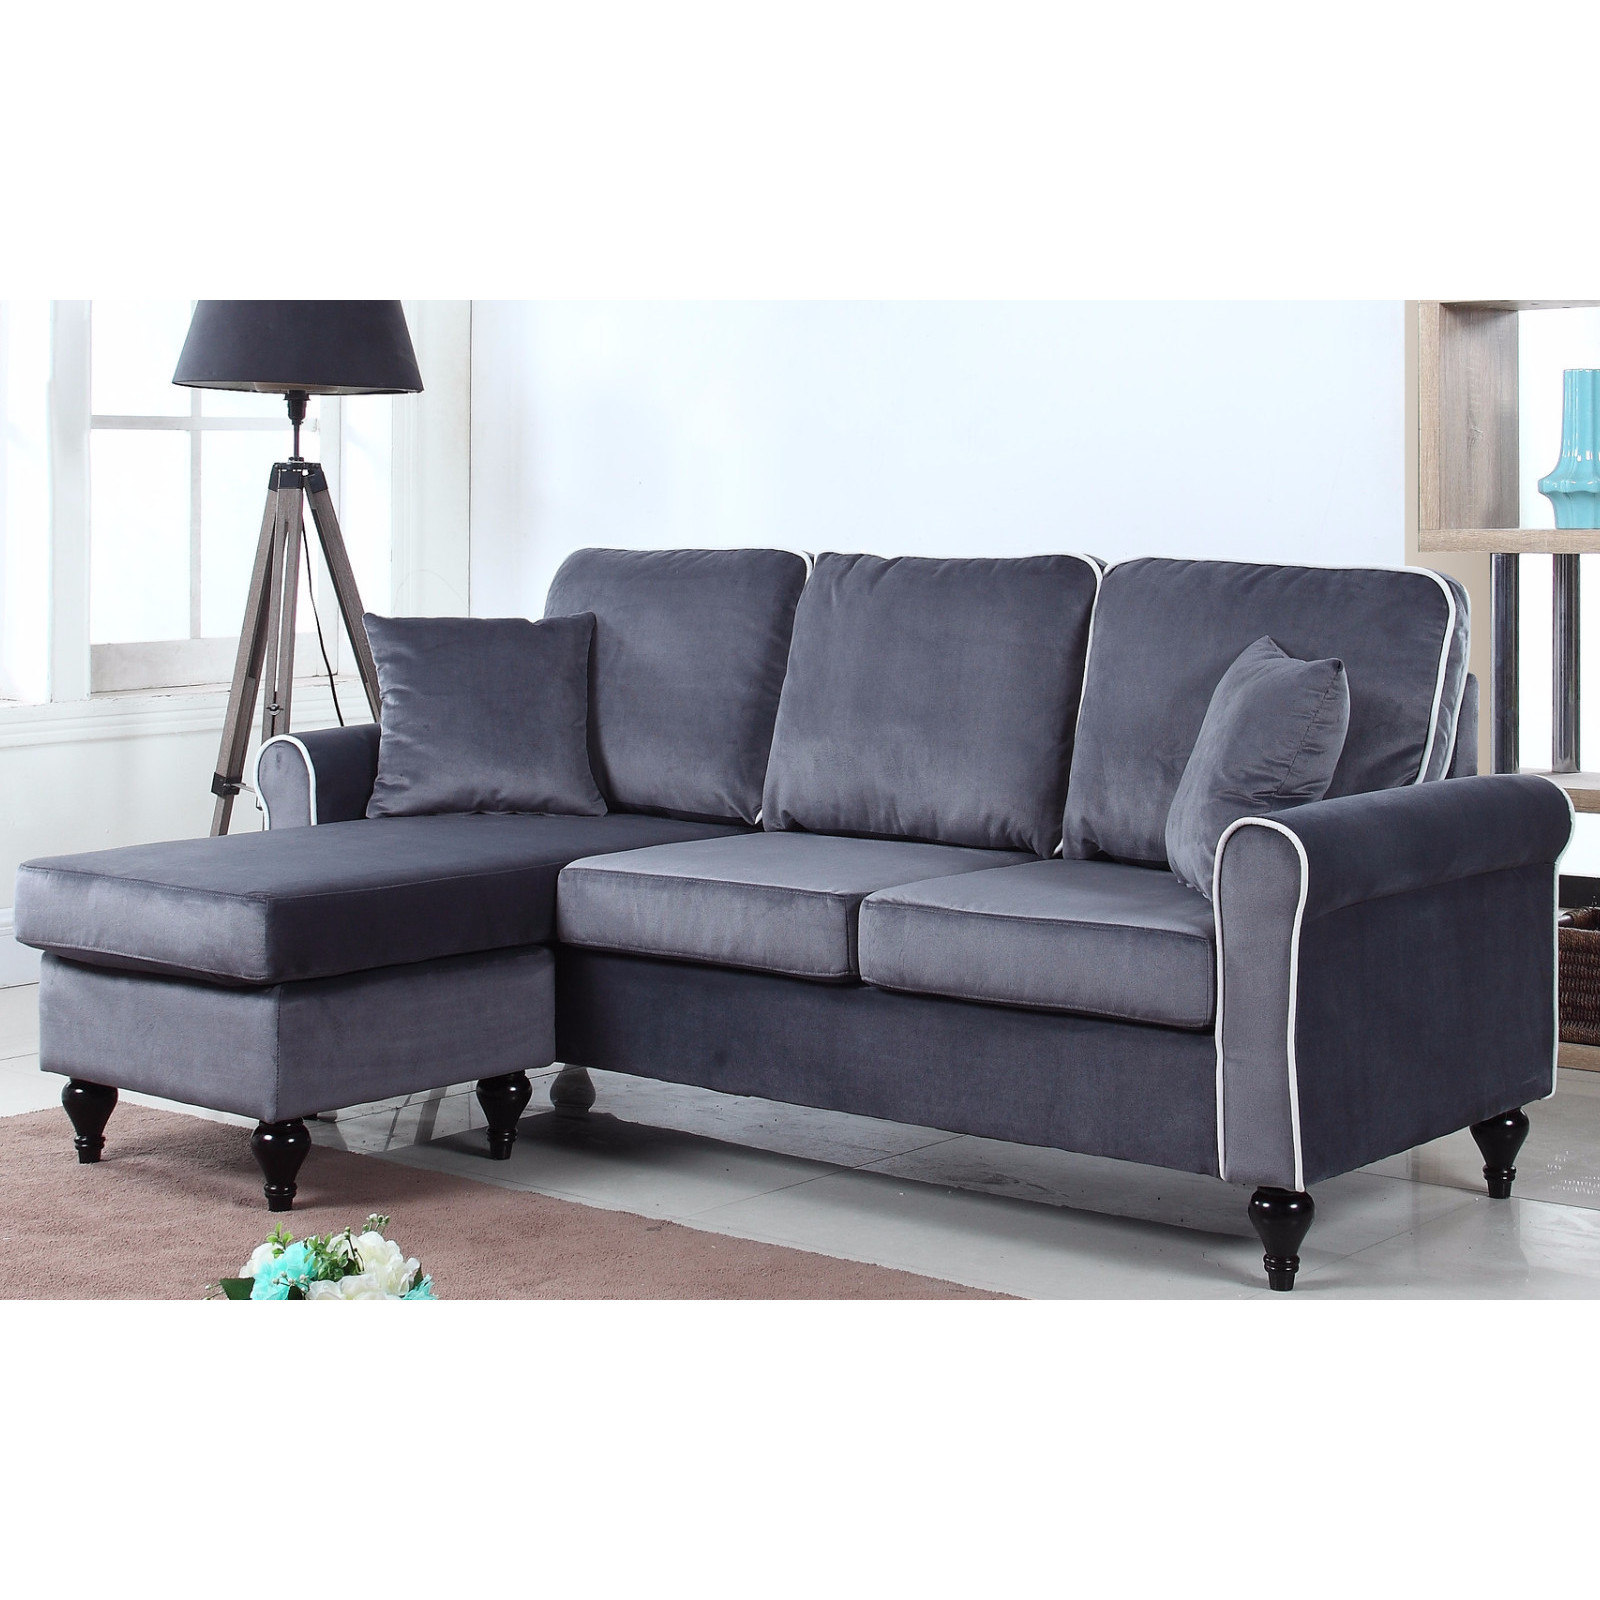 Classic and traditional small space velvet sectional sofa with reversible chaise purple walmart com